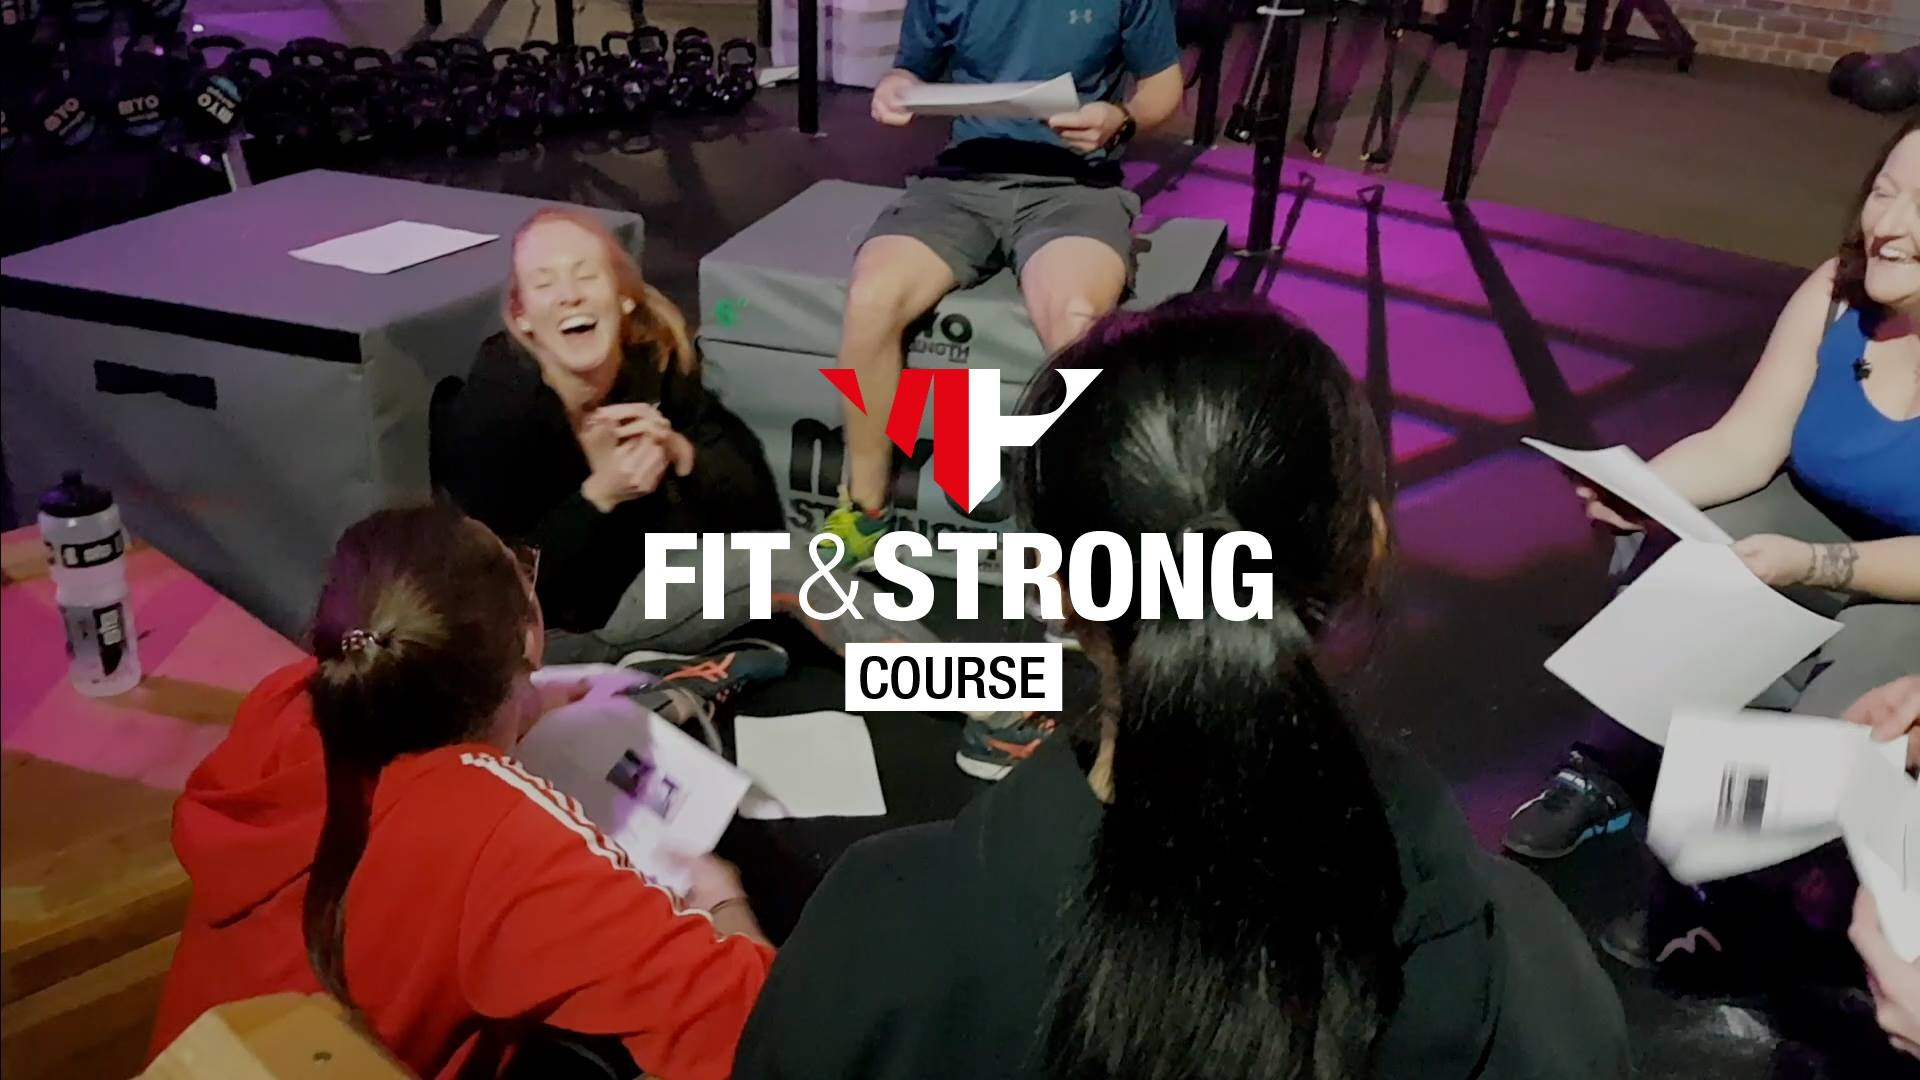 We only have 6 places left on our upcoming morning Fit & Strong course starting on Monday 10th June.      To help you make your decision and to avoid you missing your chance to book your place we have listed below some information about the course.